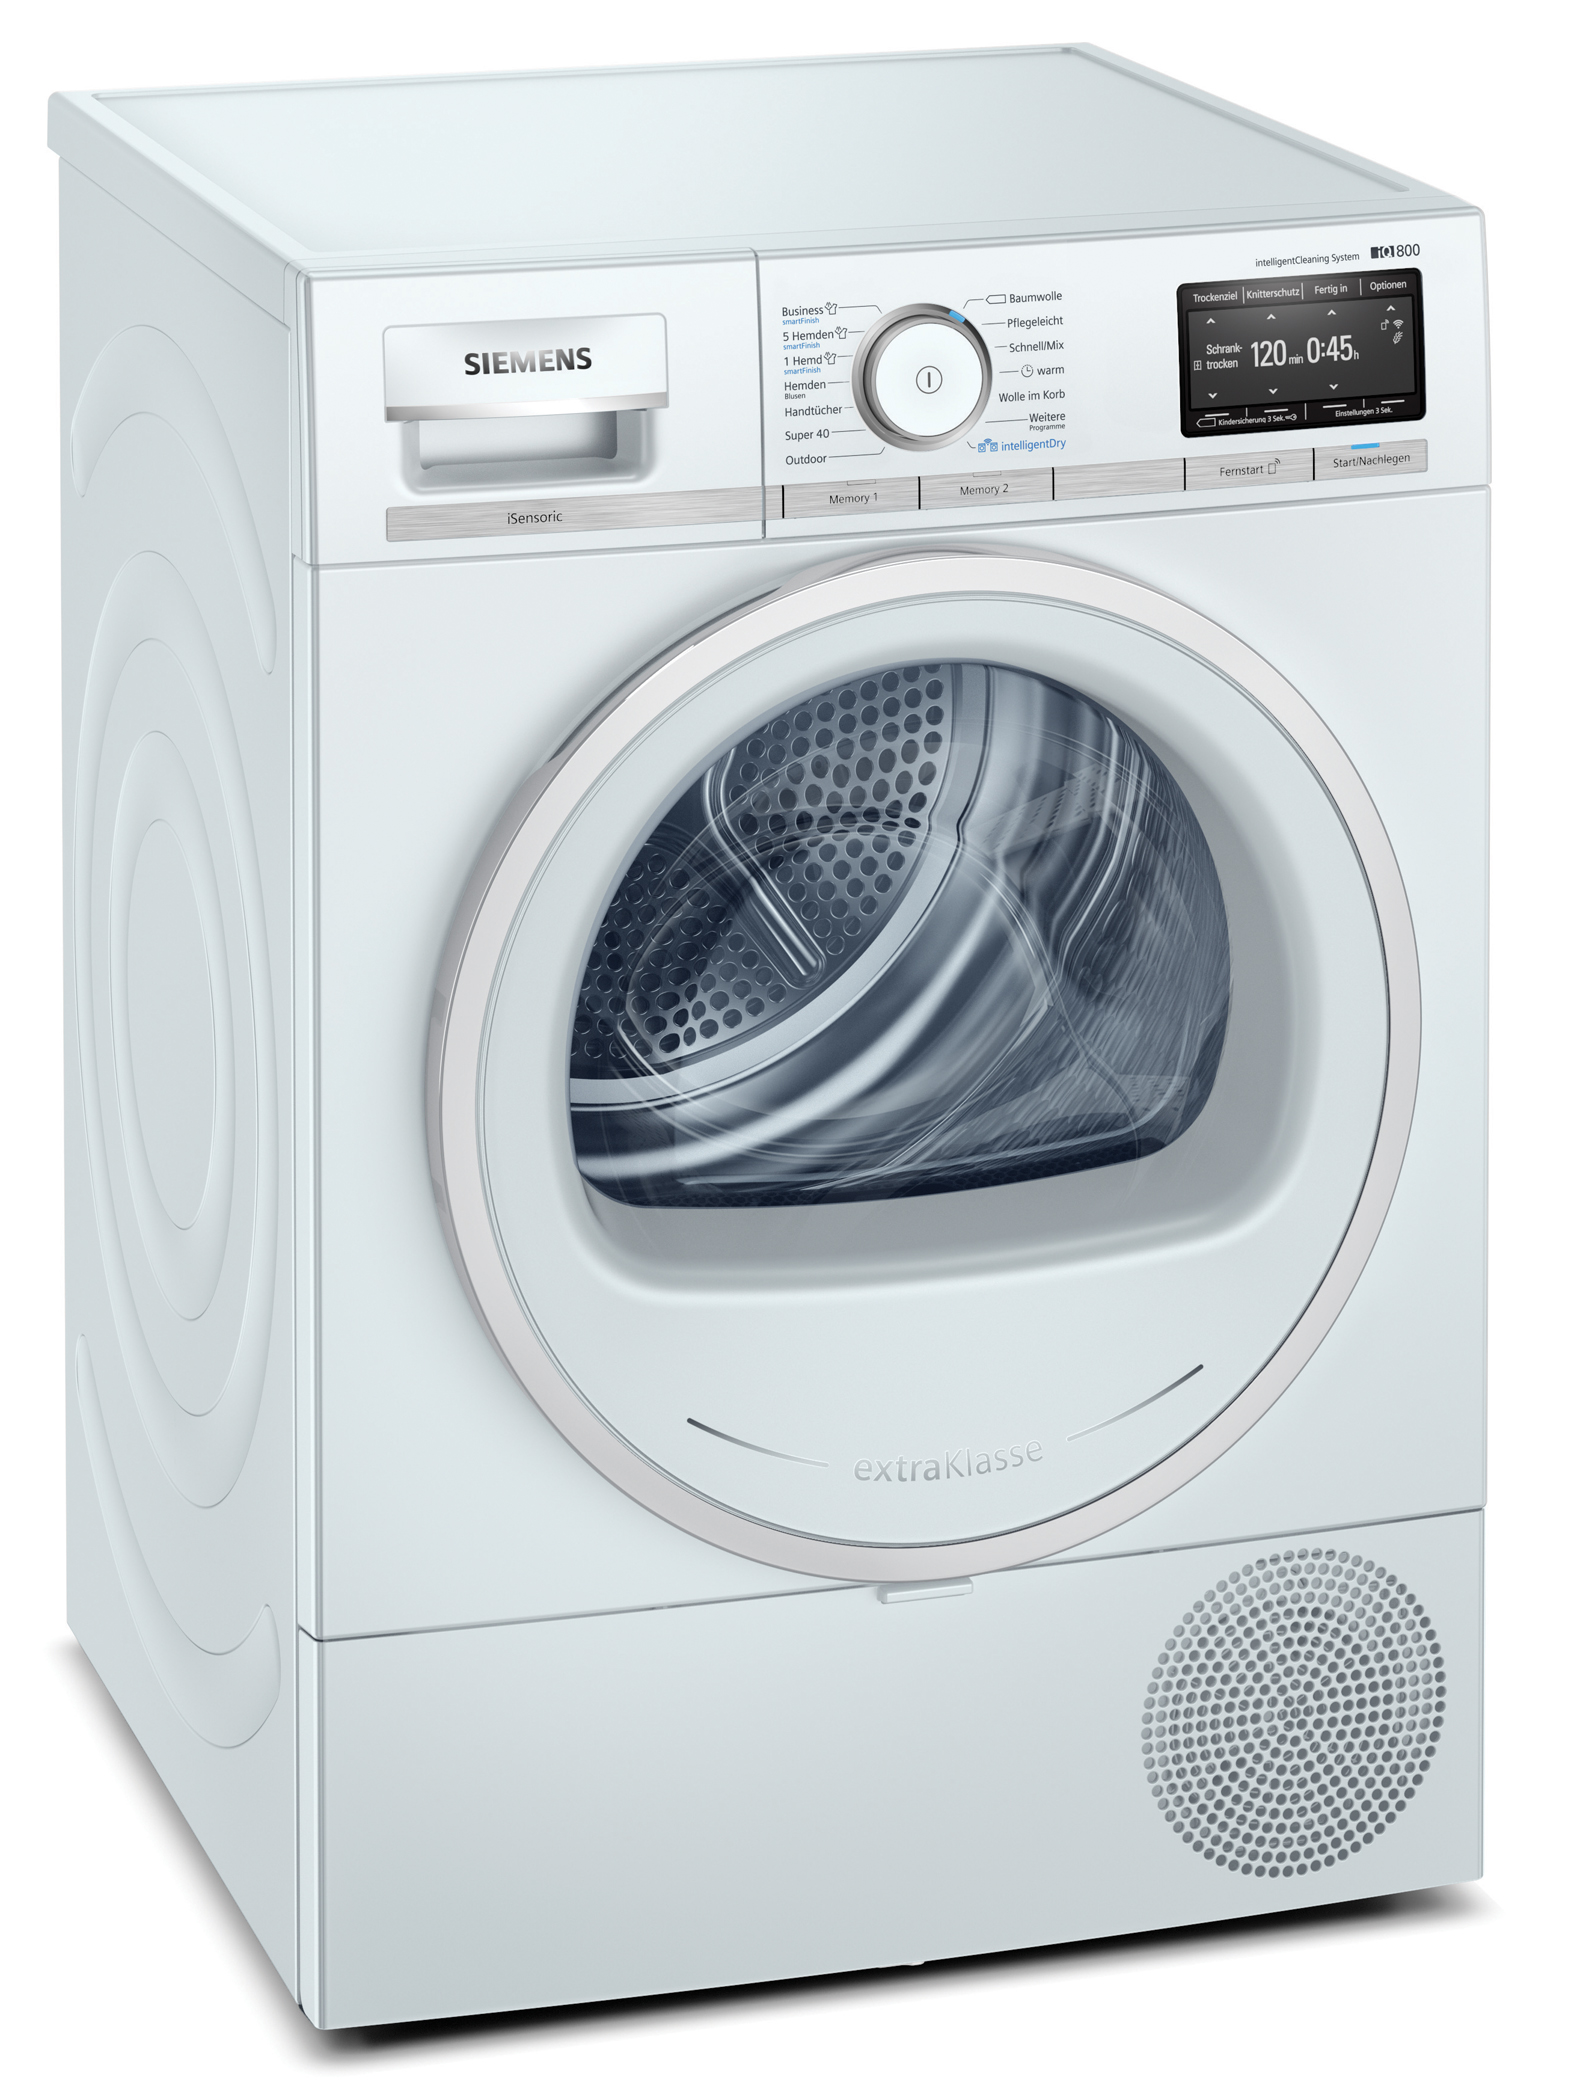 <h1>Siemens Wäschetrockner IQ800</h1><h3 style='font-size: 20px; margin: 0px 0px 15px 0px;'> - intelligentDry, intelligentCleaning, smartFinish</h3>